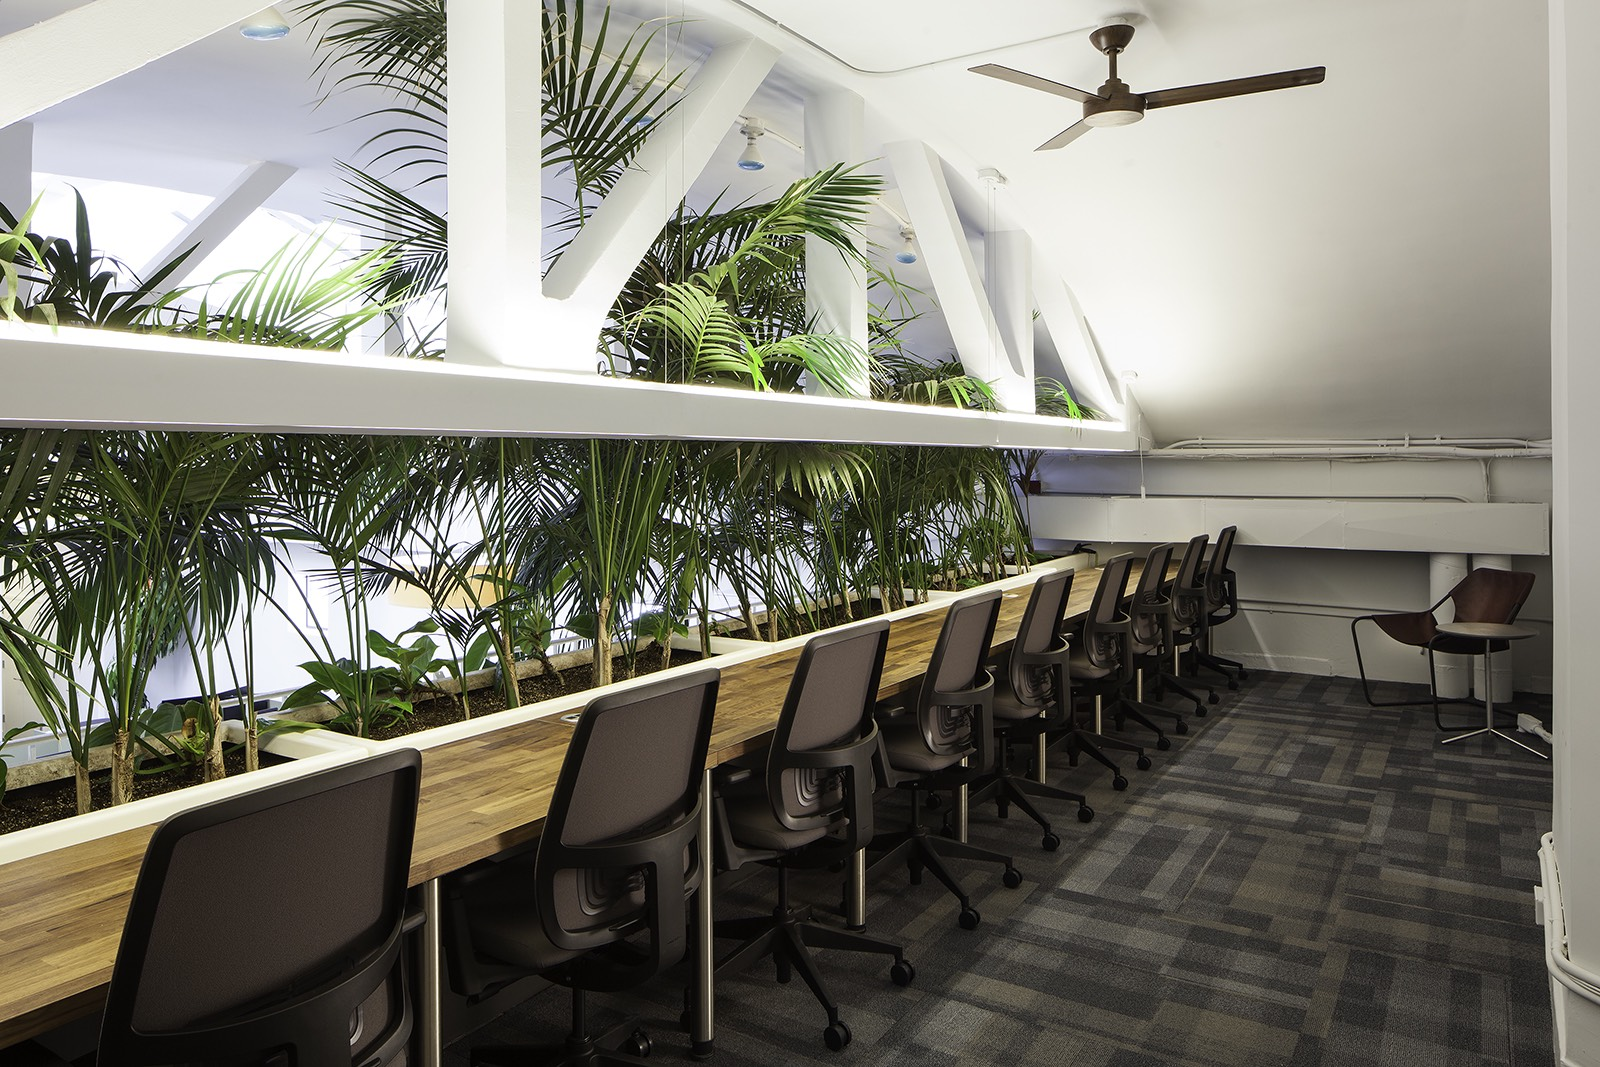 Inside the commons minimalist nyc coworking space officelovin 39 - Small work spaces minimalist ...